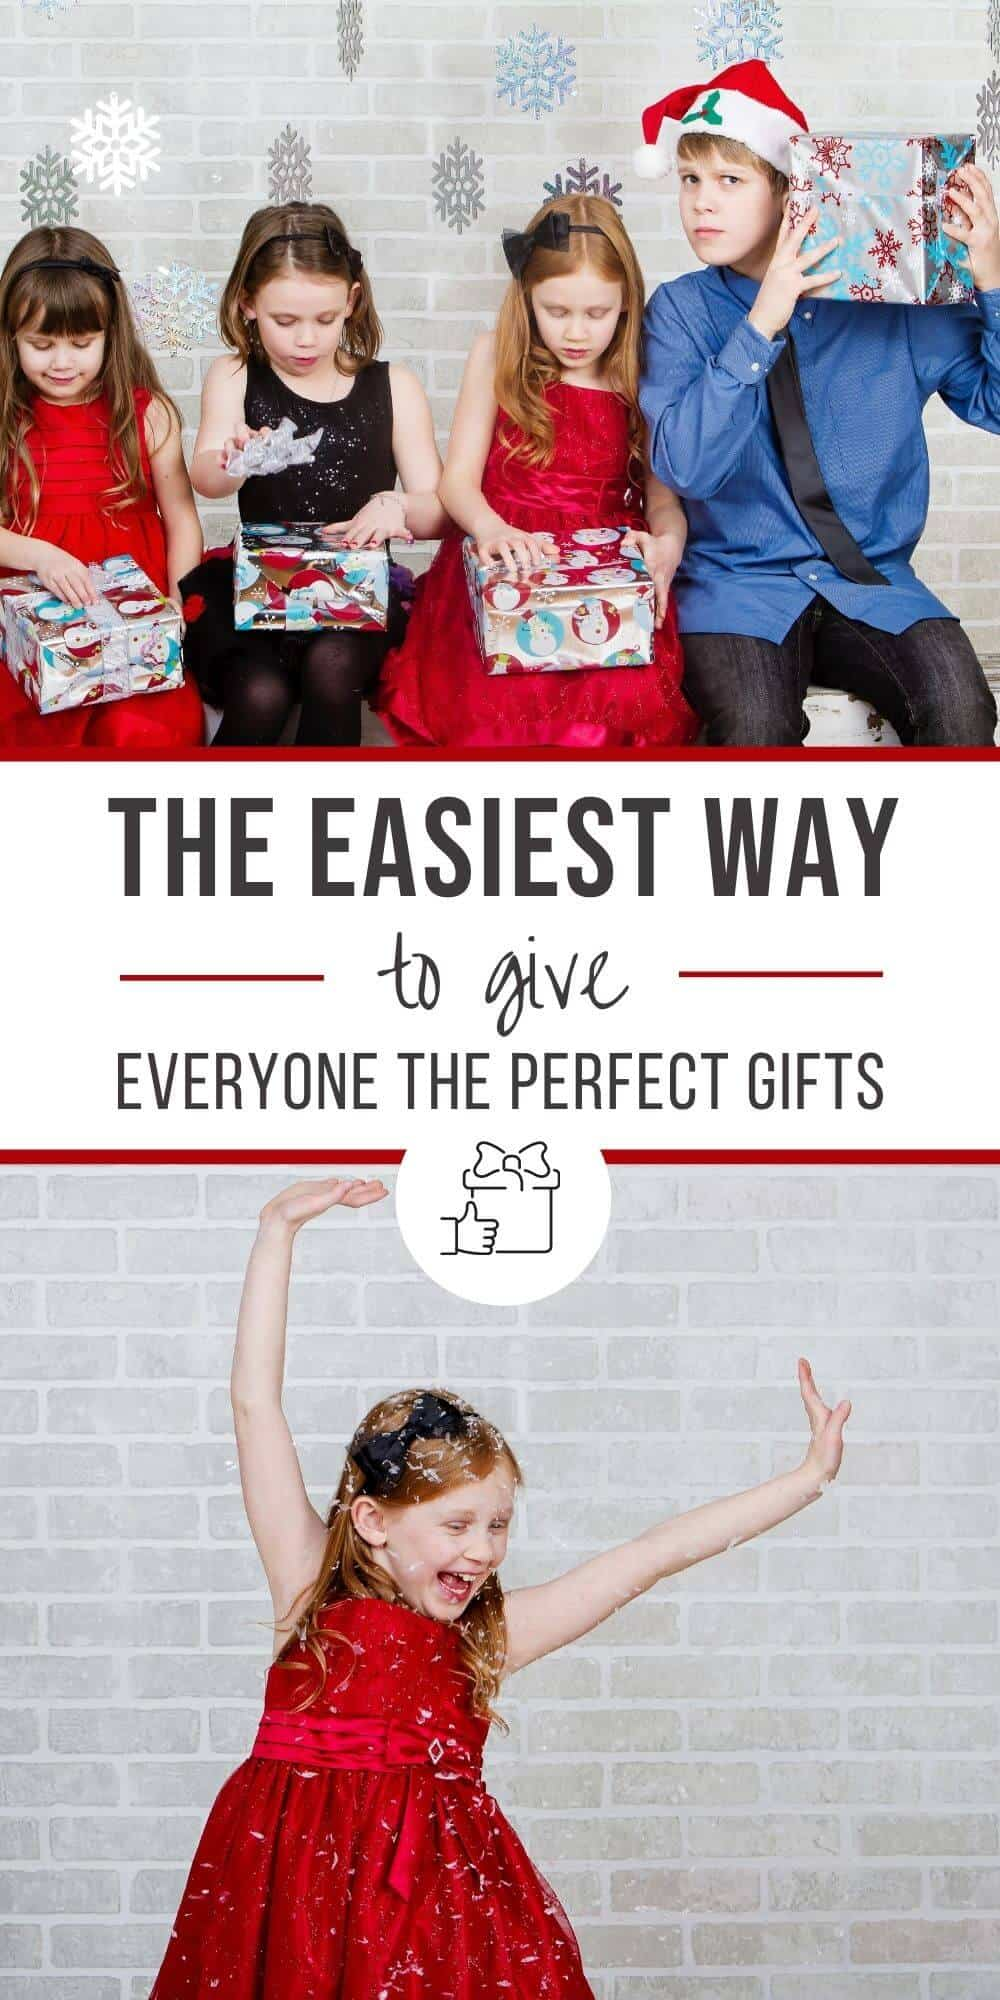 The easiest way to give everyone the perfect gifts